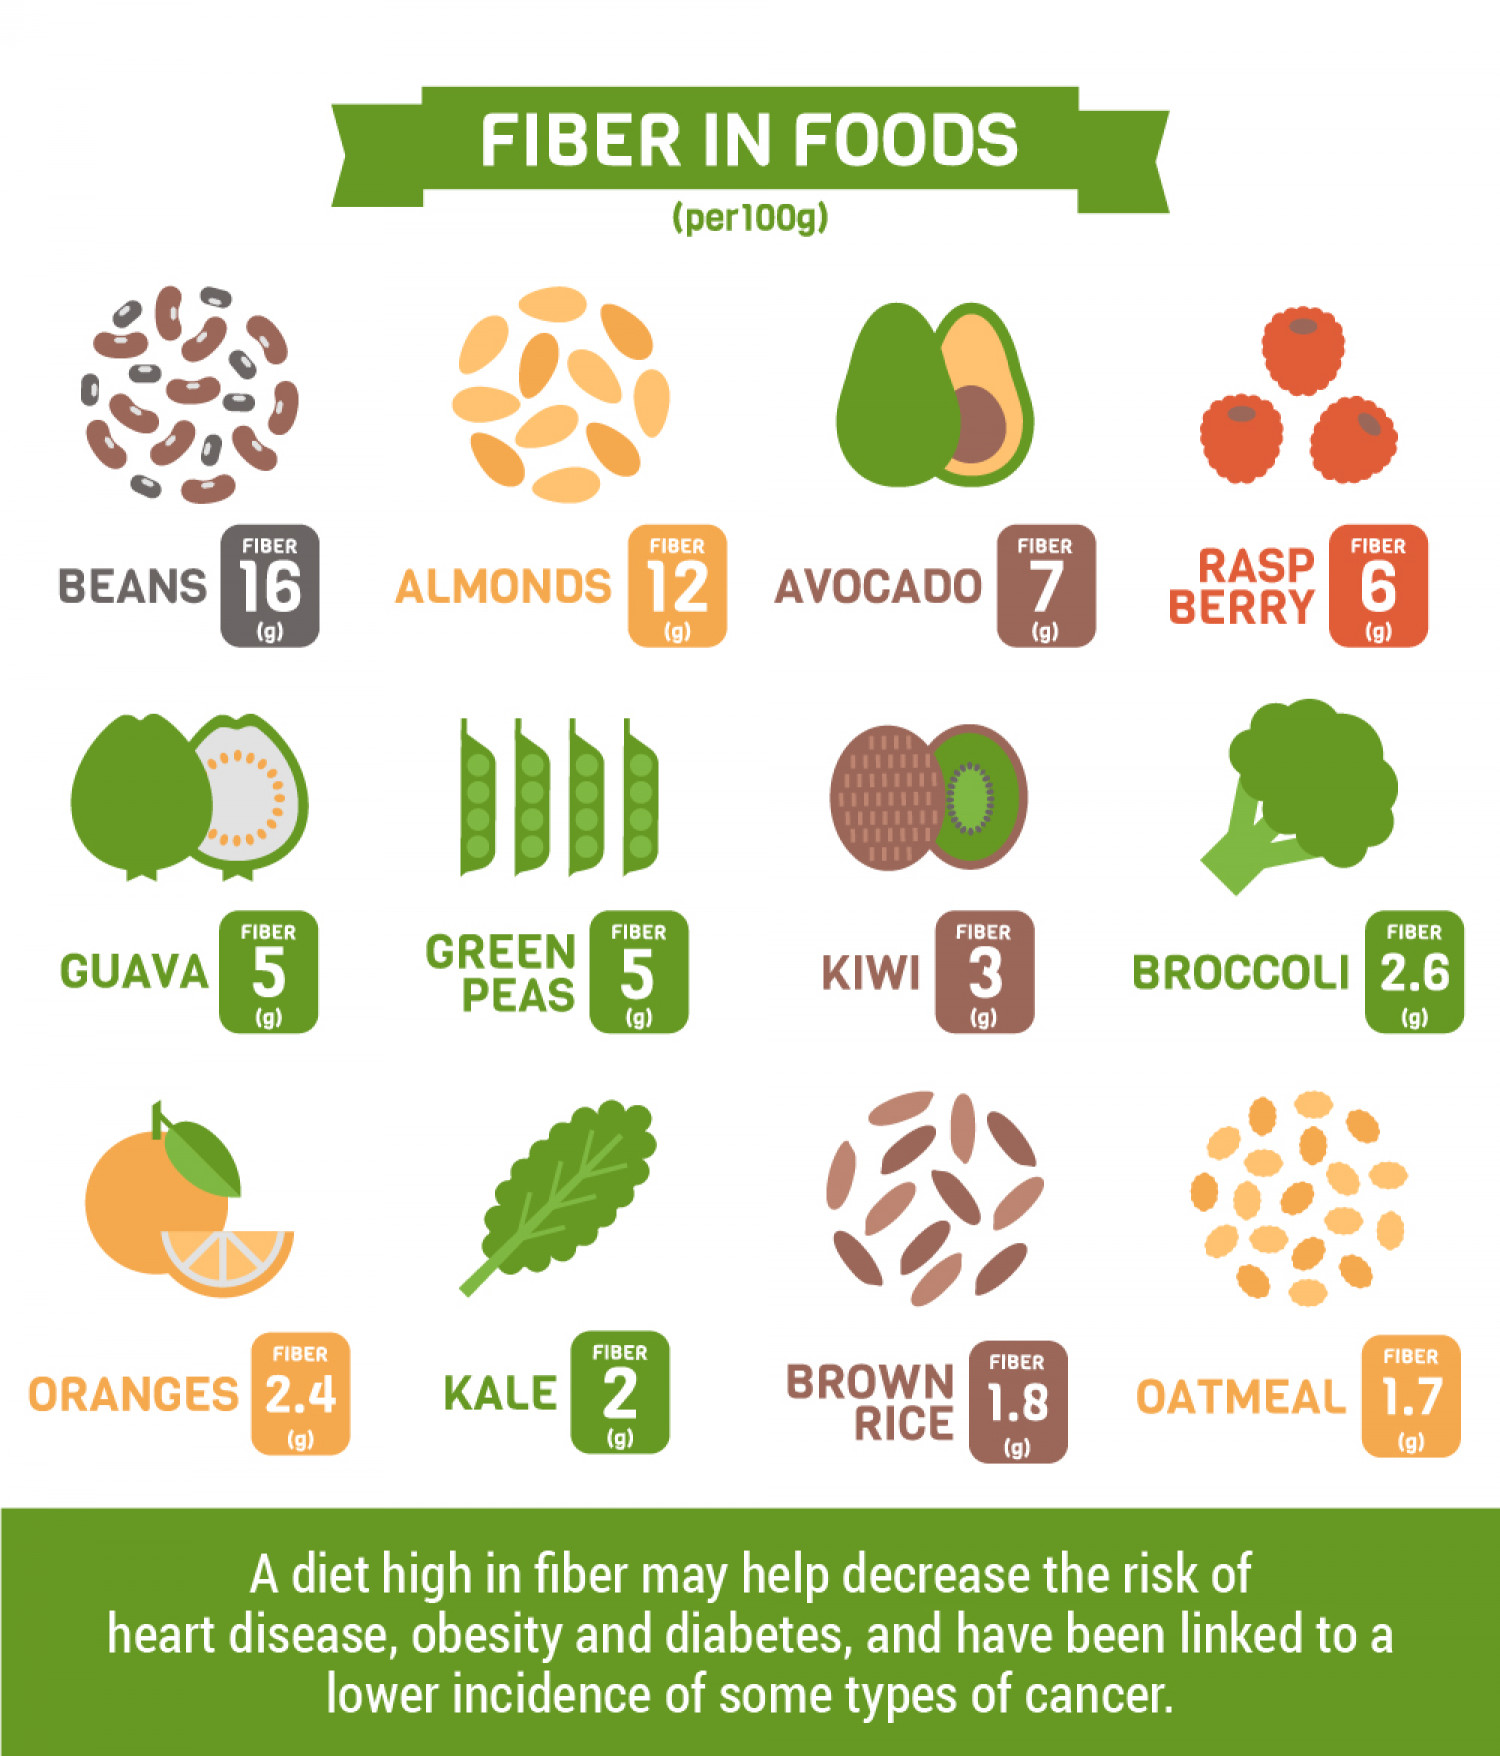 Fiber in Foods Infographic